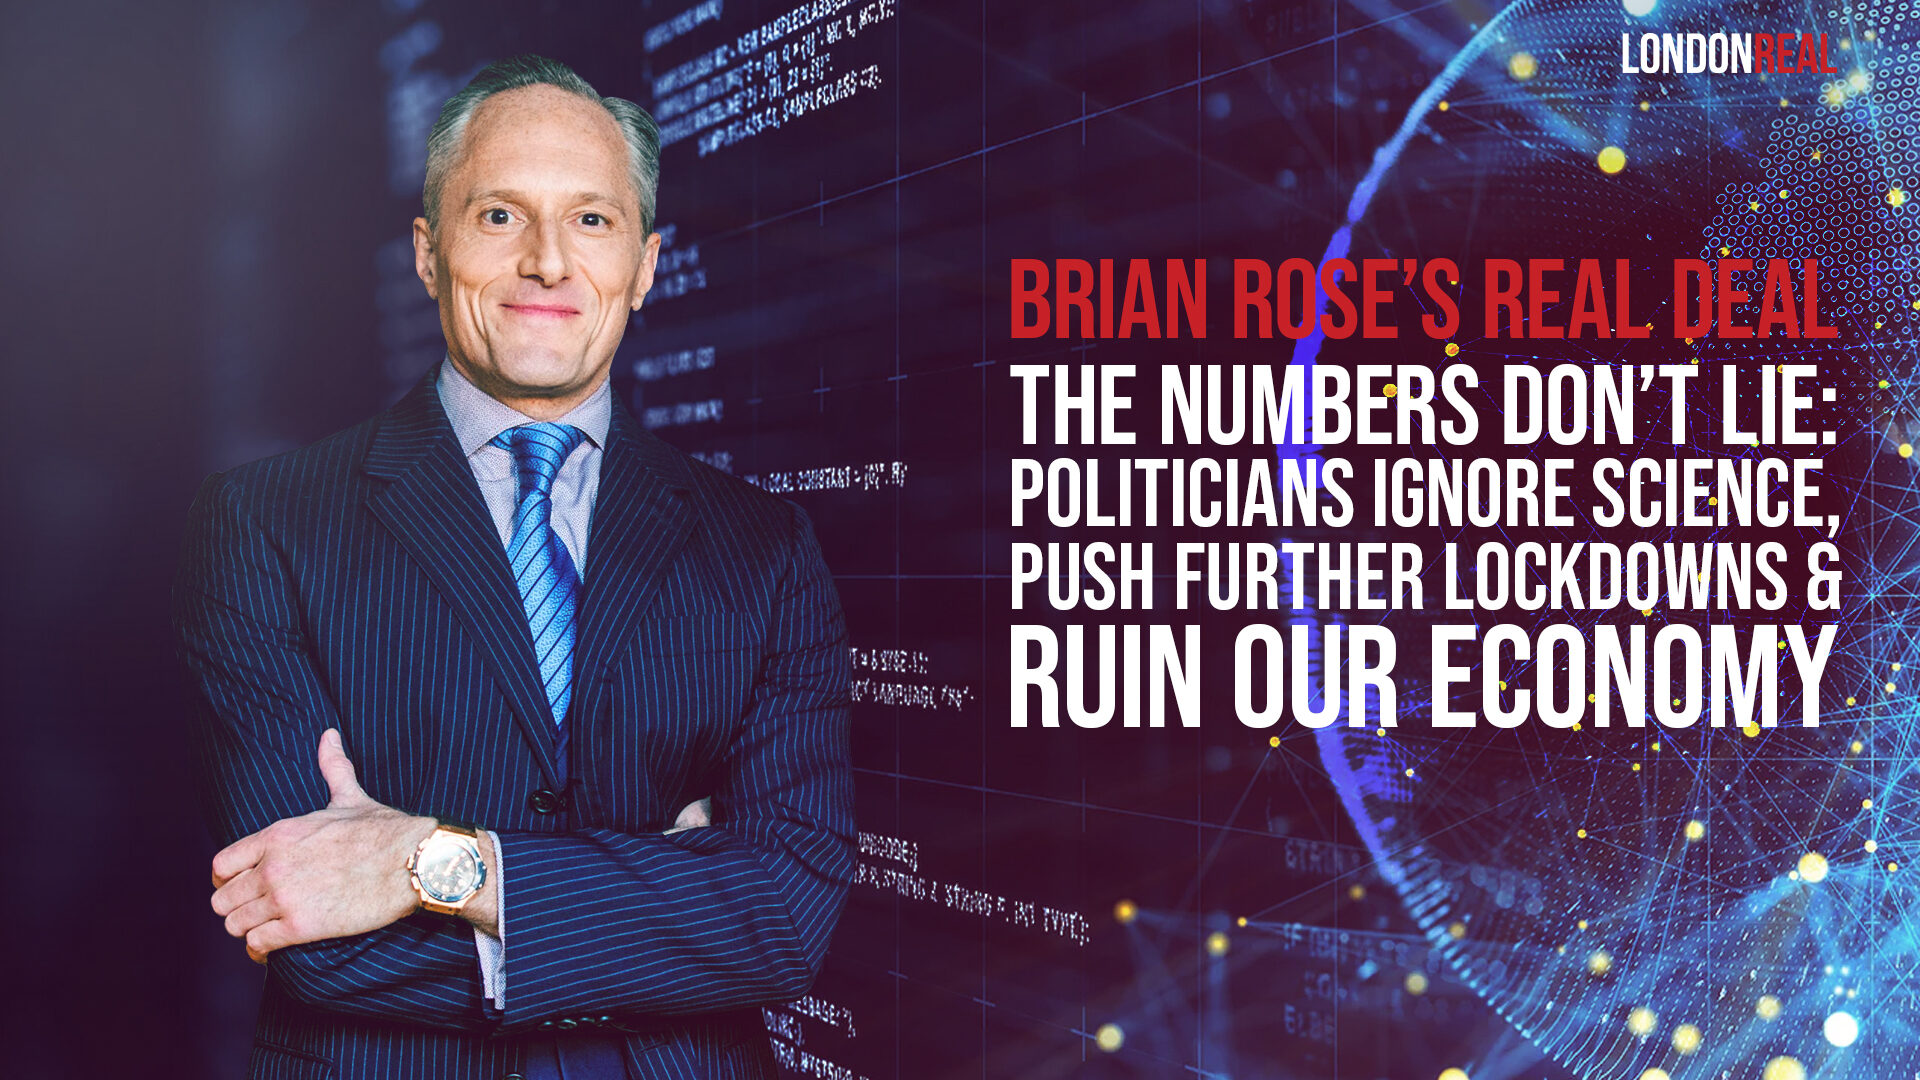 Brian Rose's Real Deal - THE NUMBERS DON'T LIE: POLITICIANS IGNORE SCIENCE, PUSH FURTHER LOCKDOWNS & RUIN OUR ECONOMY